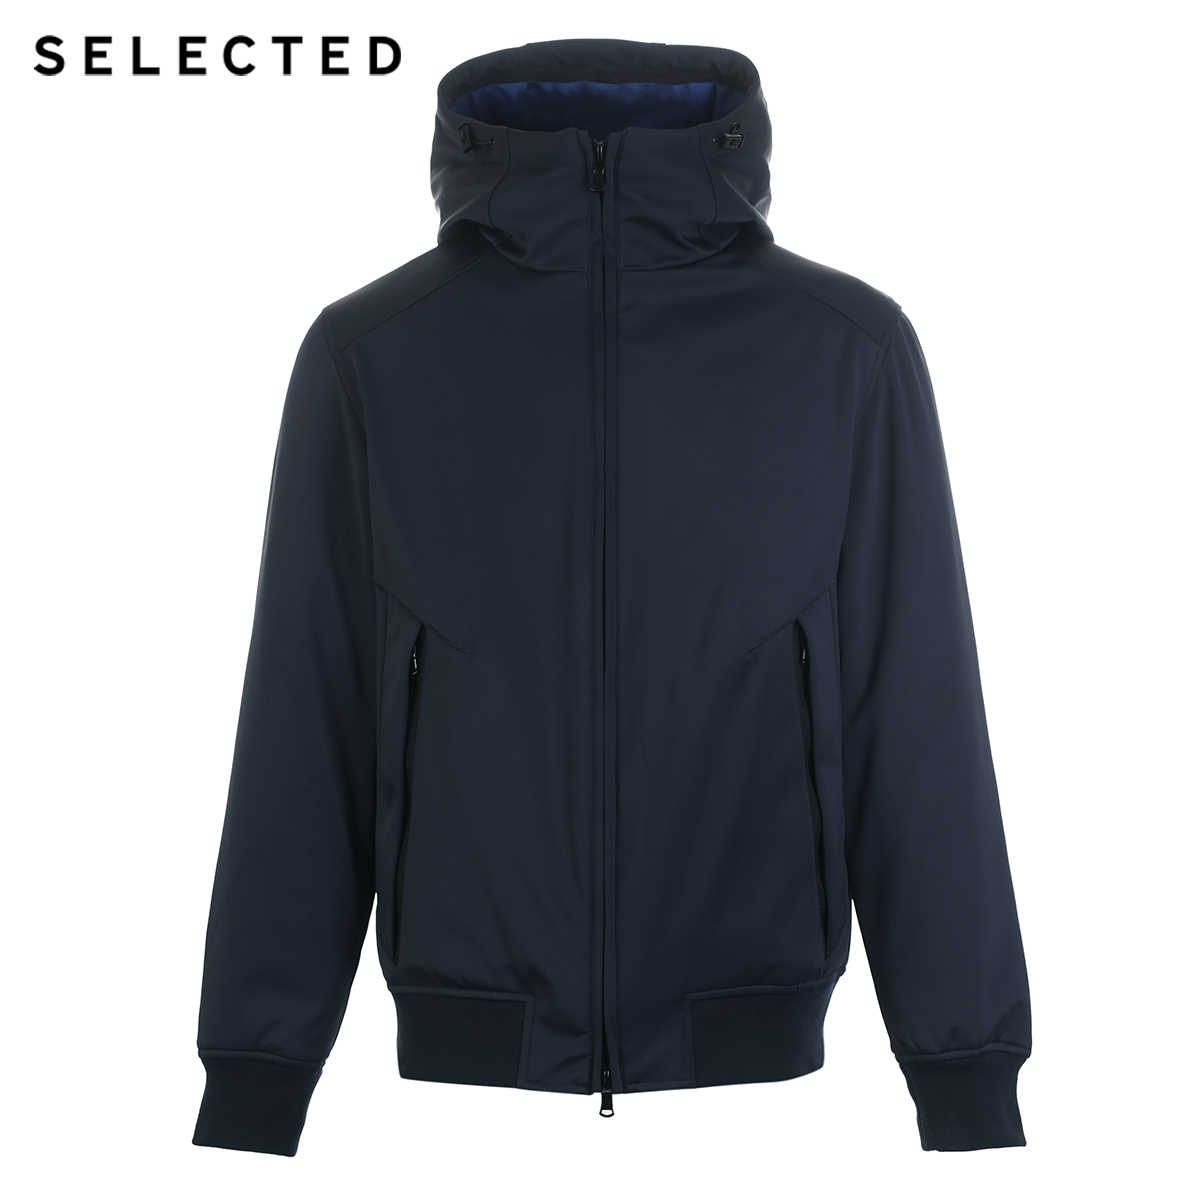 SELECTED New Short Down Jacket 겨울 남성 파카 Duck Down Coat 간단한 후드 캐주얼 따뜻한 옷 S | 419112511